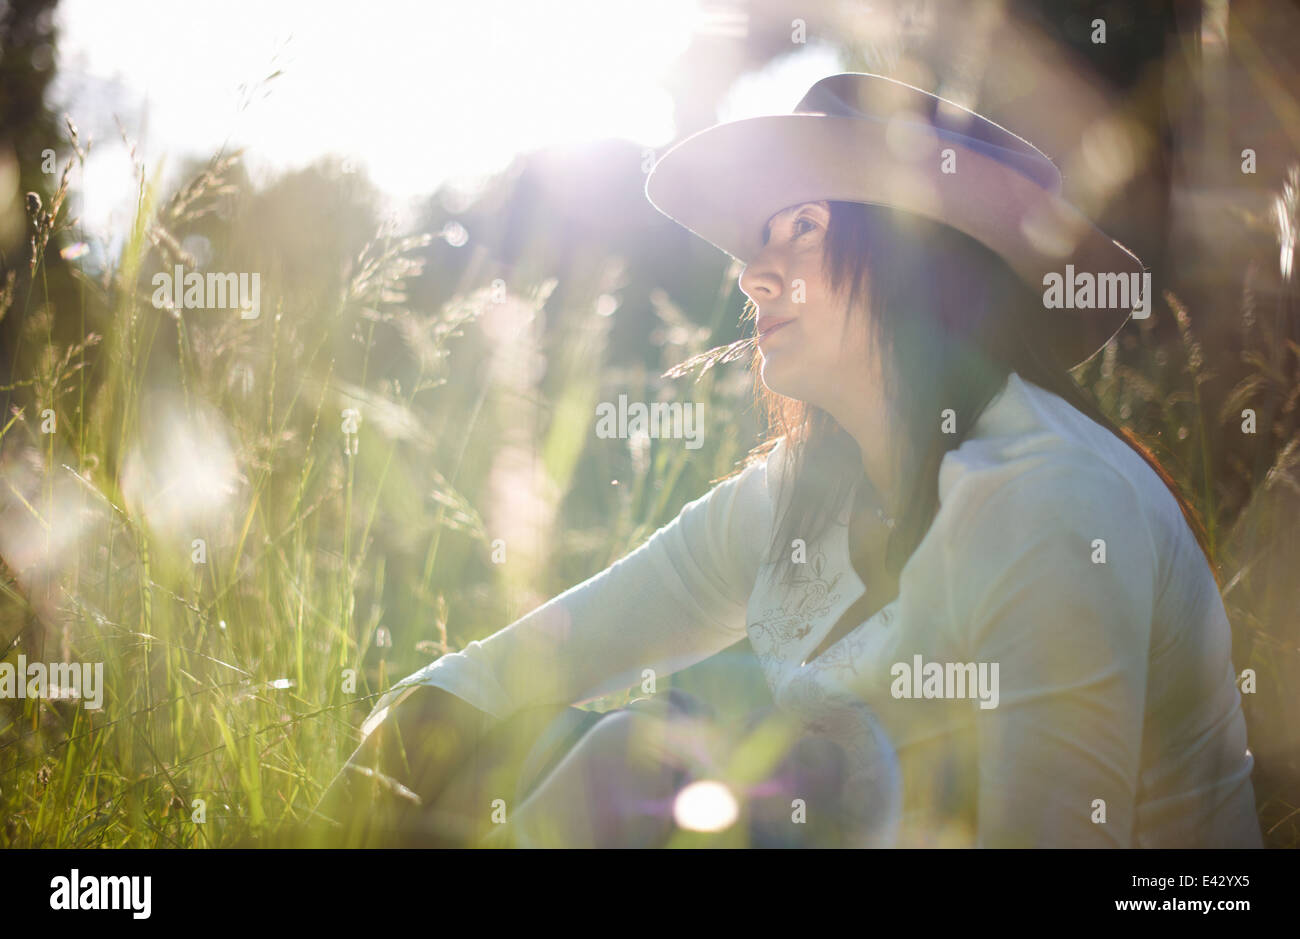 Mature woman in cowboy hat with blade of grass in her mouth - Stock Image